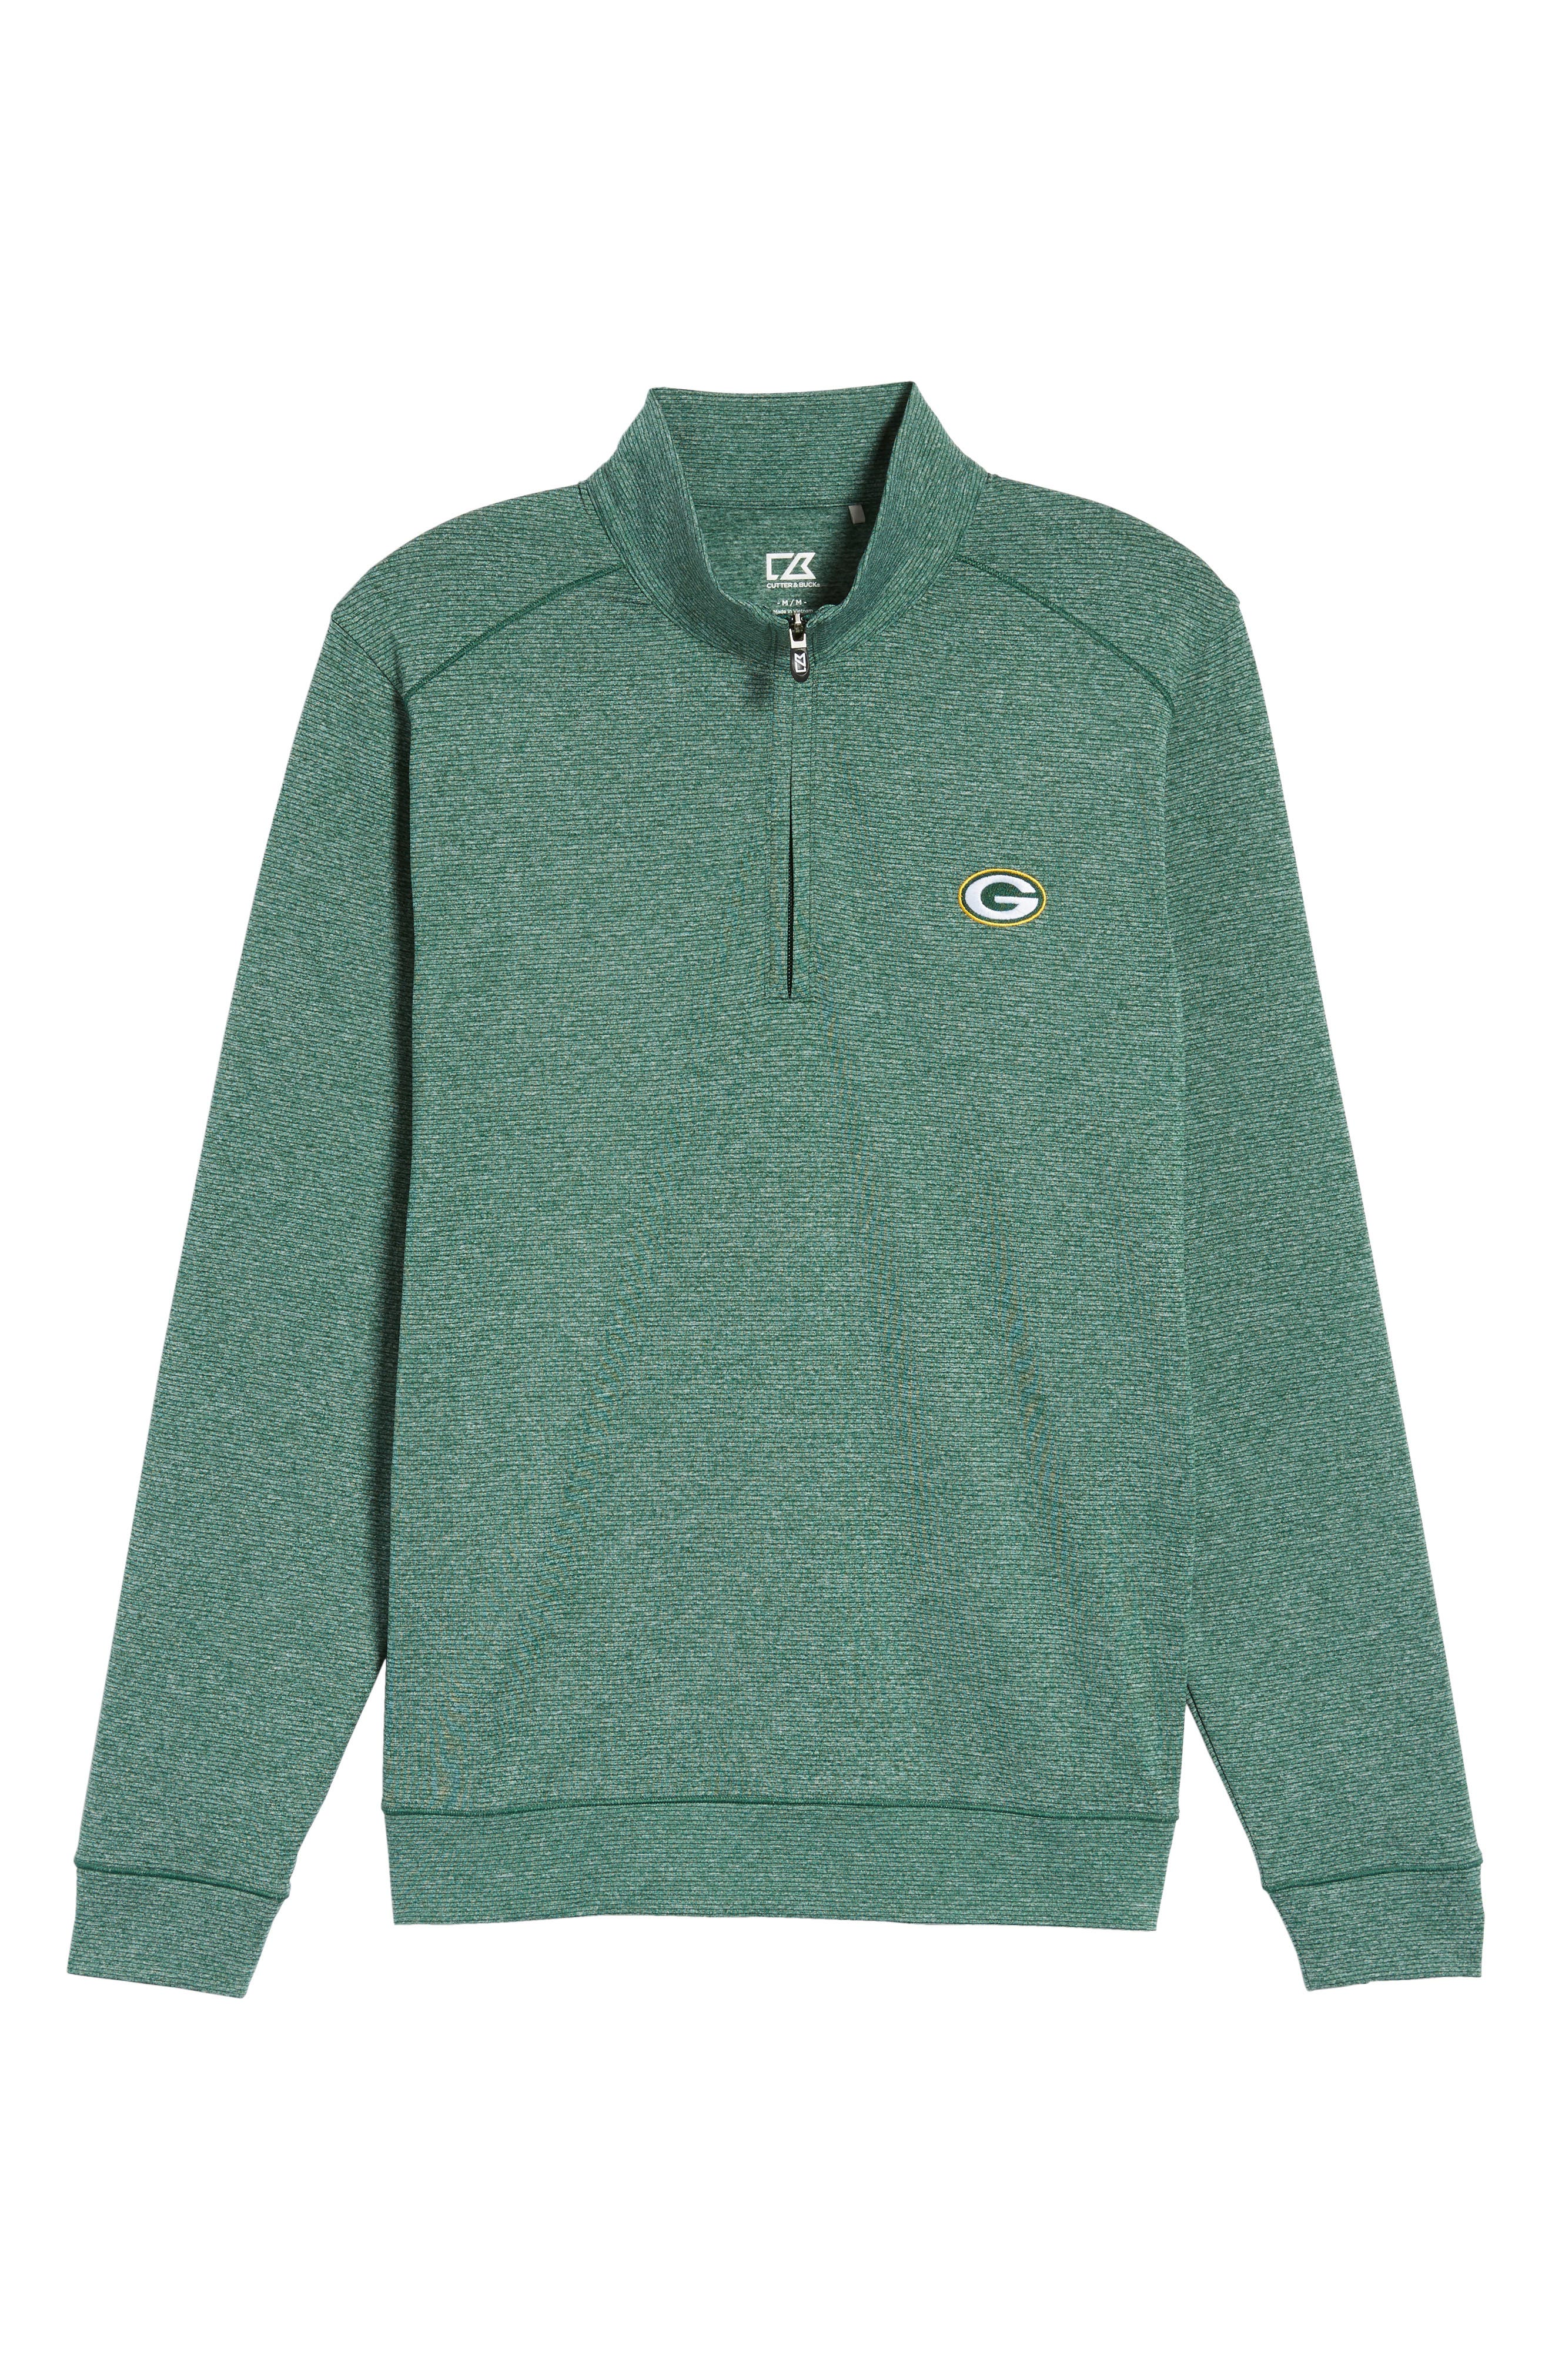 Shoreline - Green Bay Packers Half Zip Pullover,                             Alternate thumbnail 6, color,                             Hunter Heather